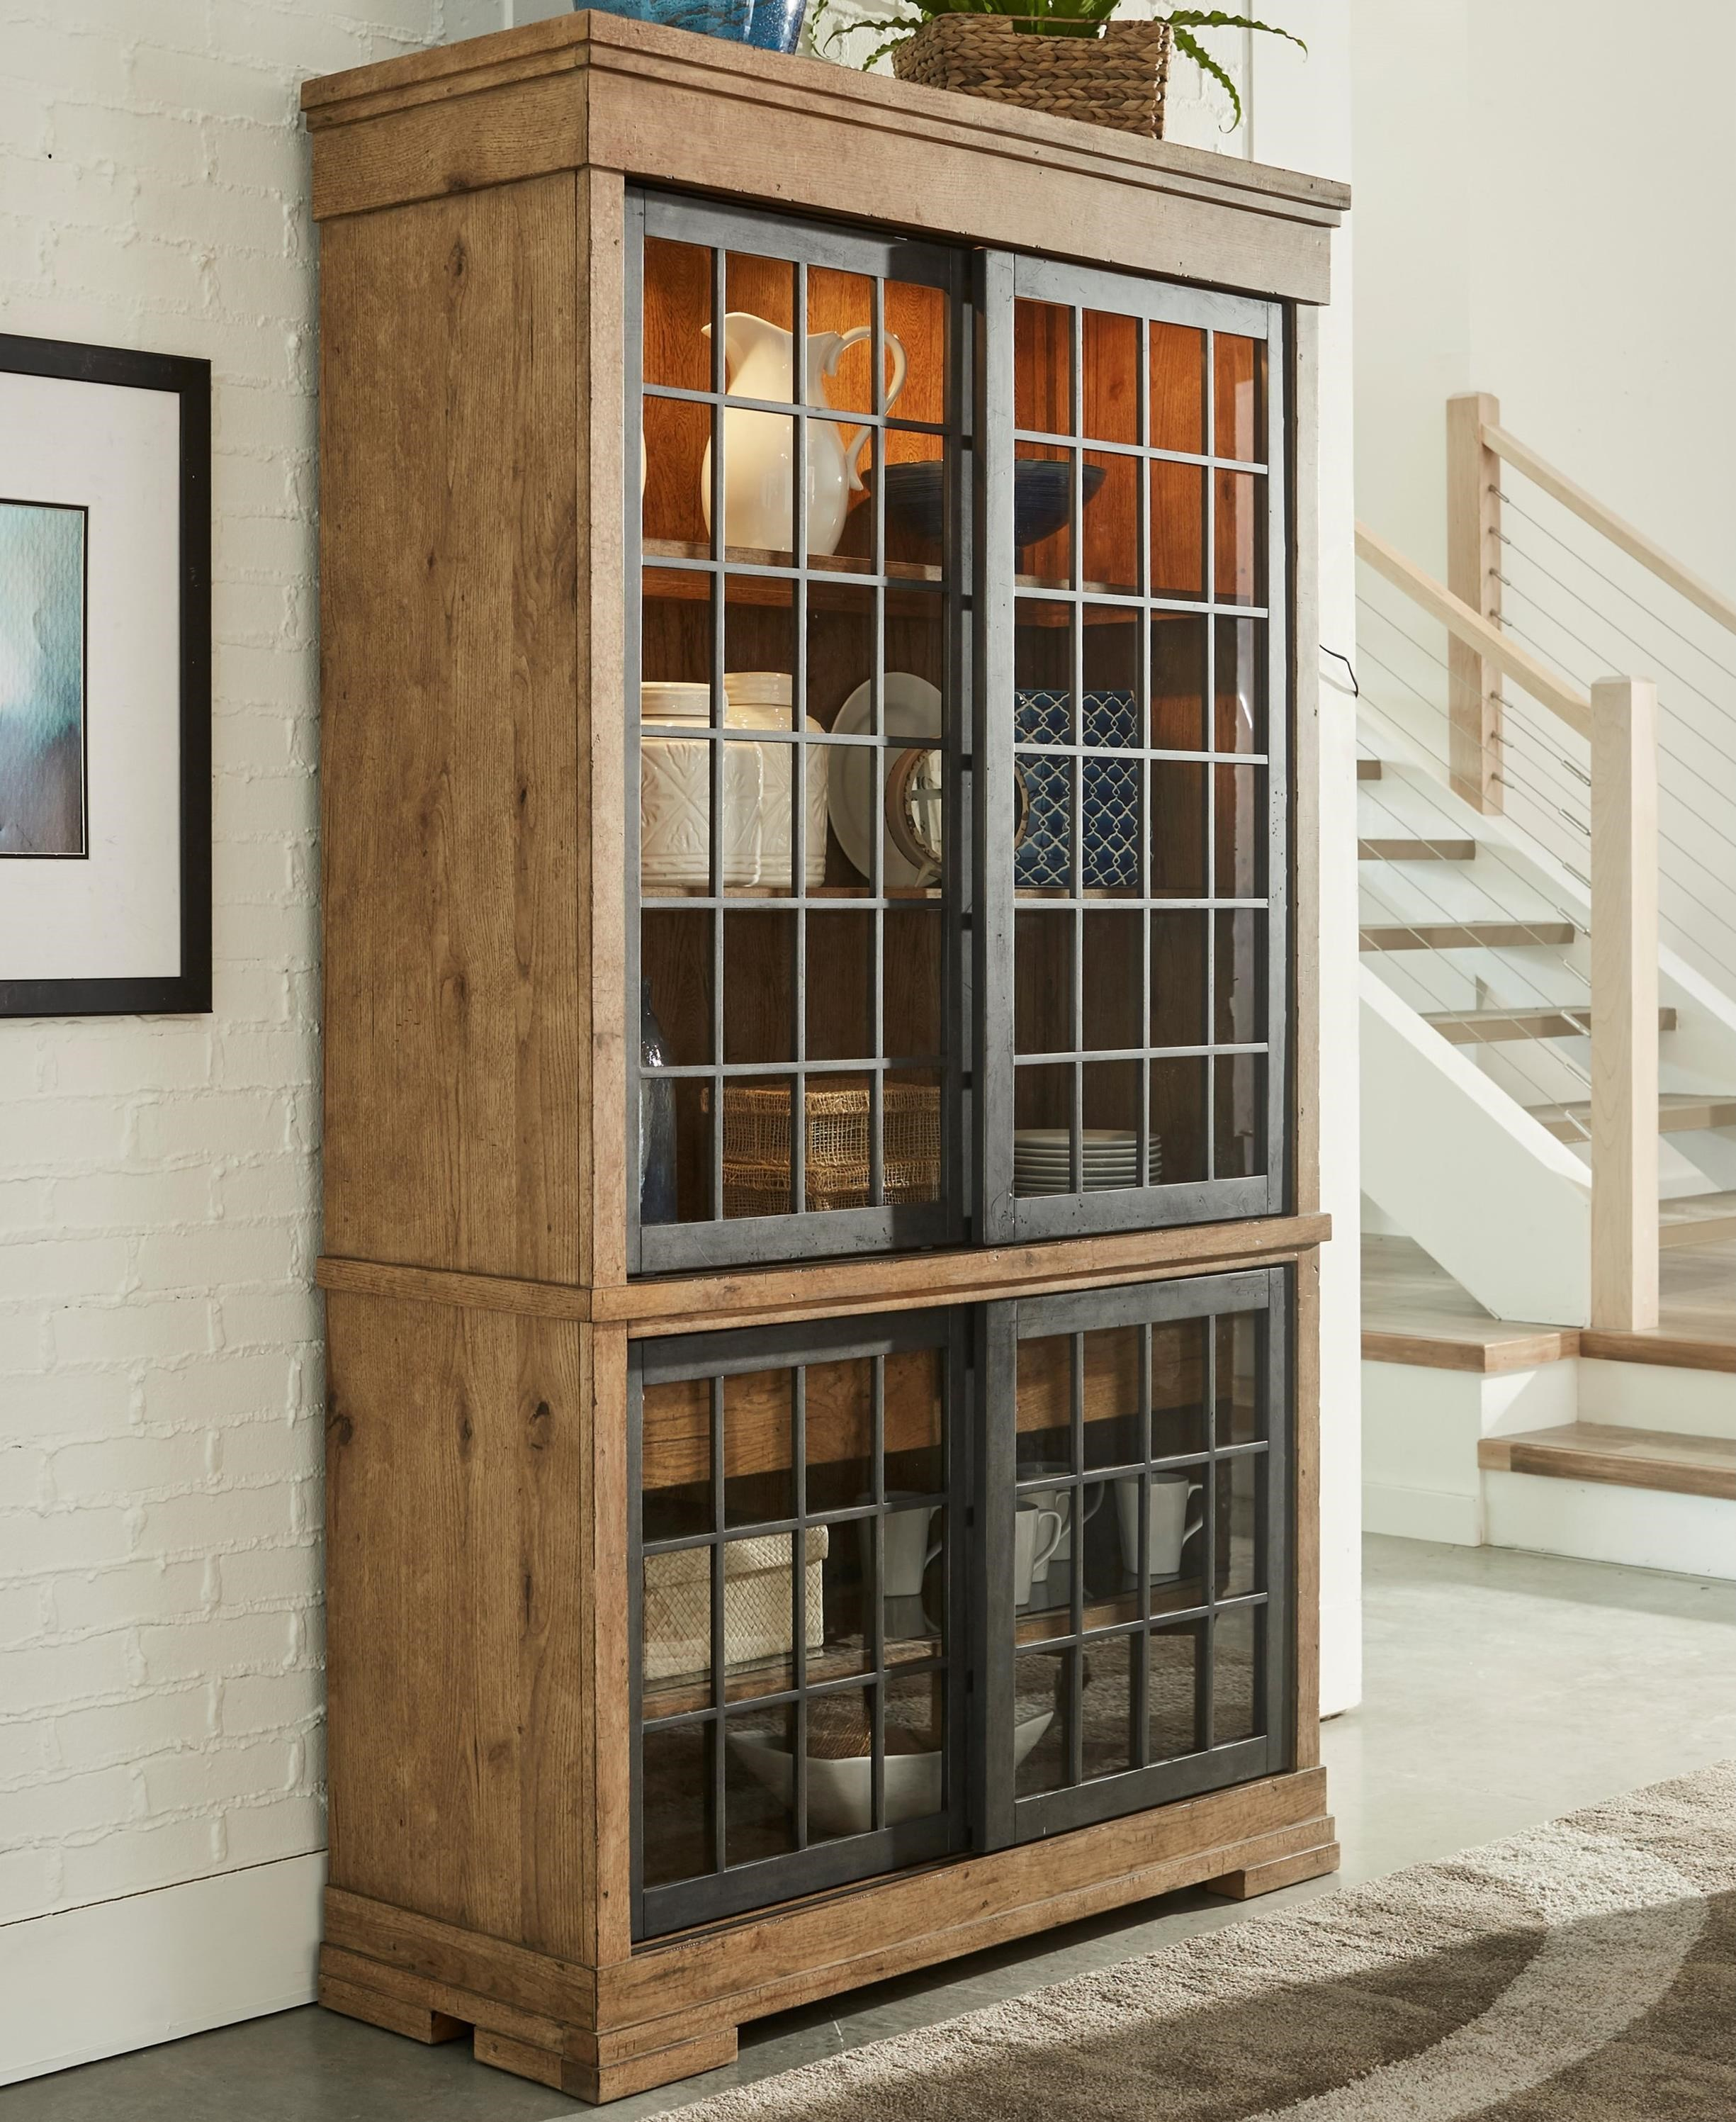 Affection Display Cabinet with Lighting and Sliding Glass